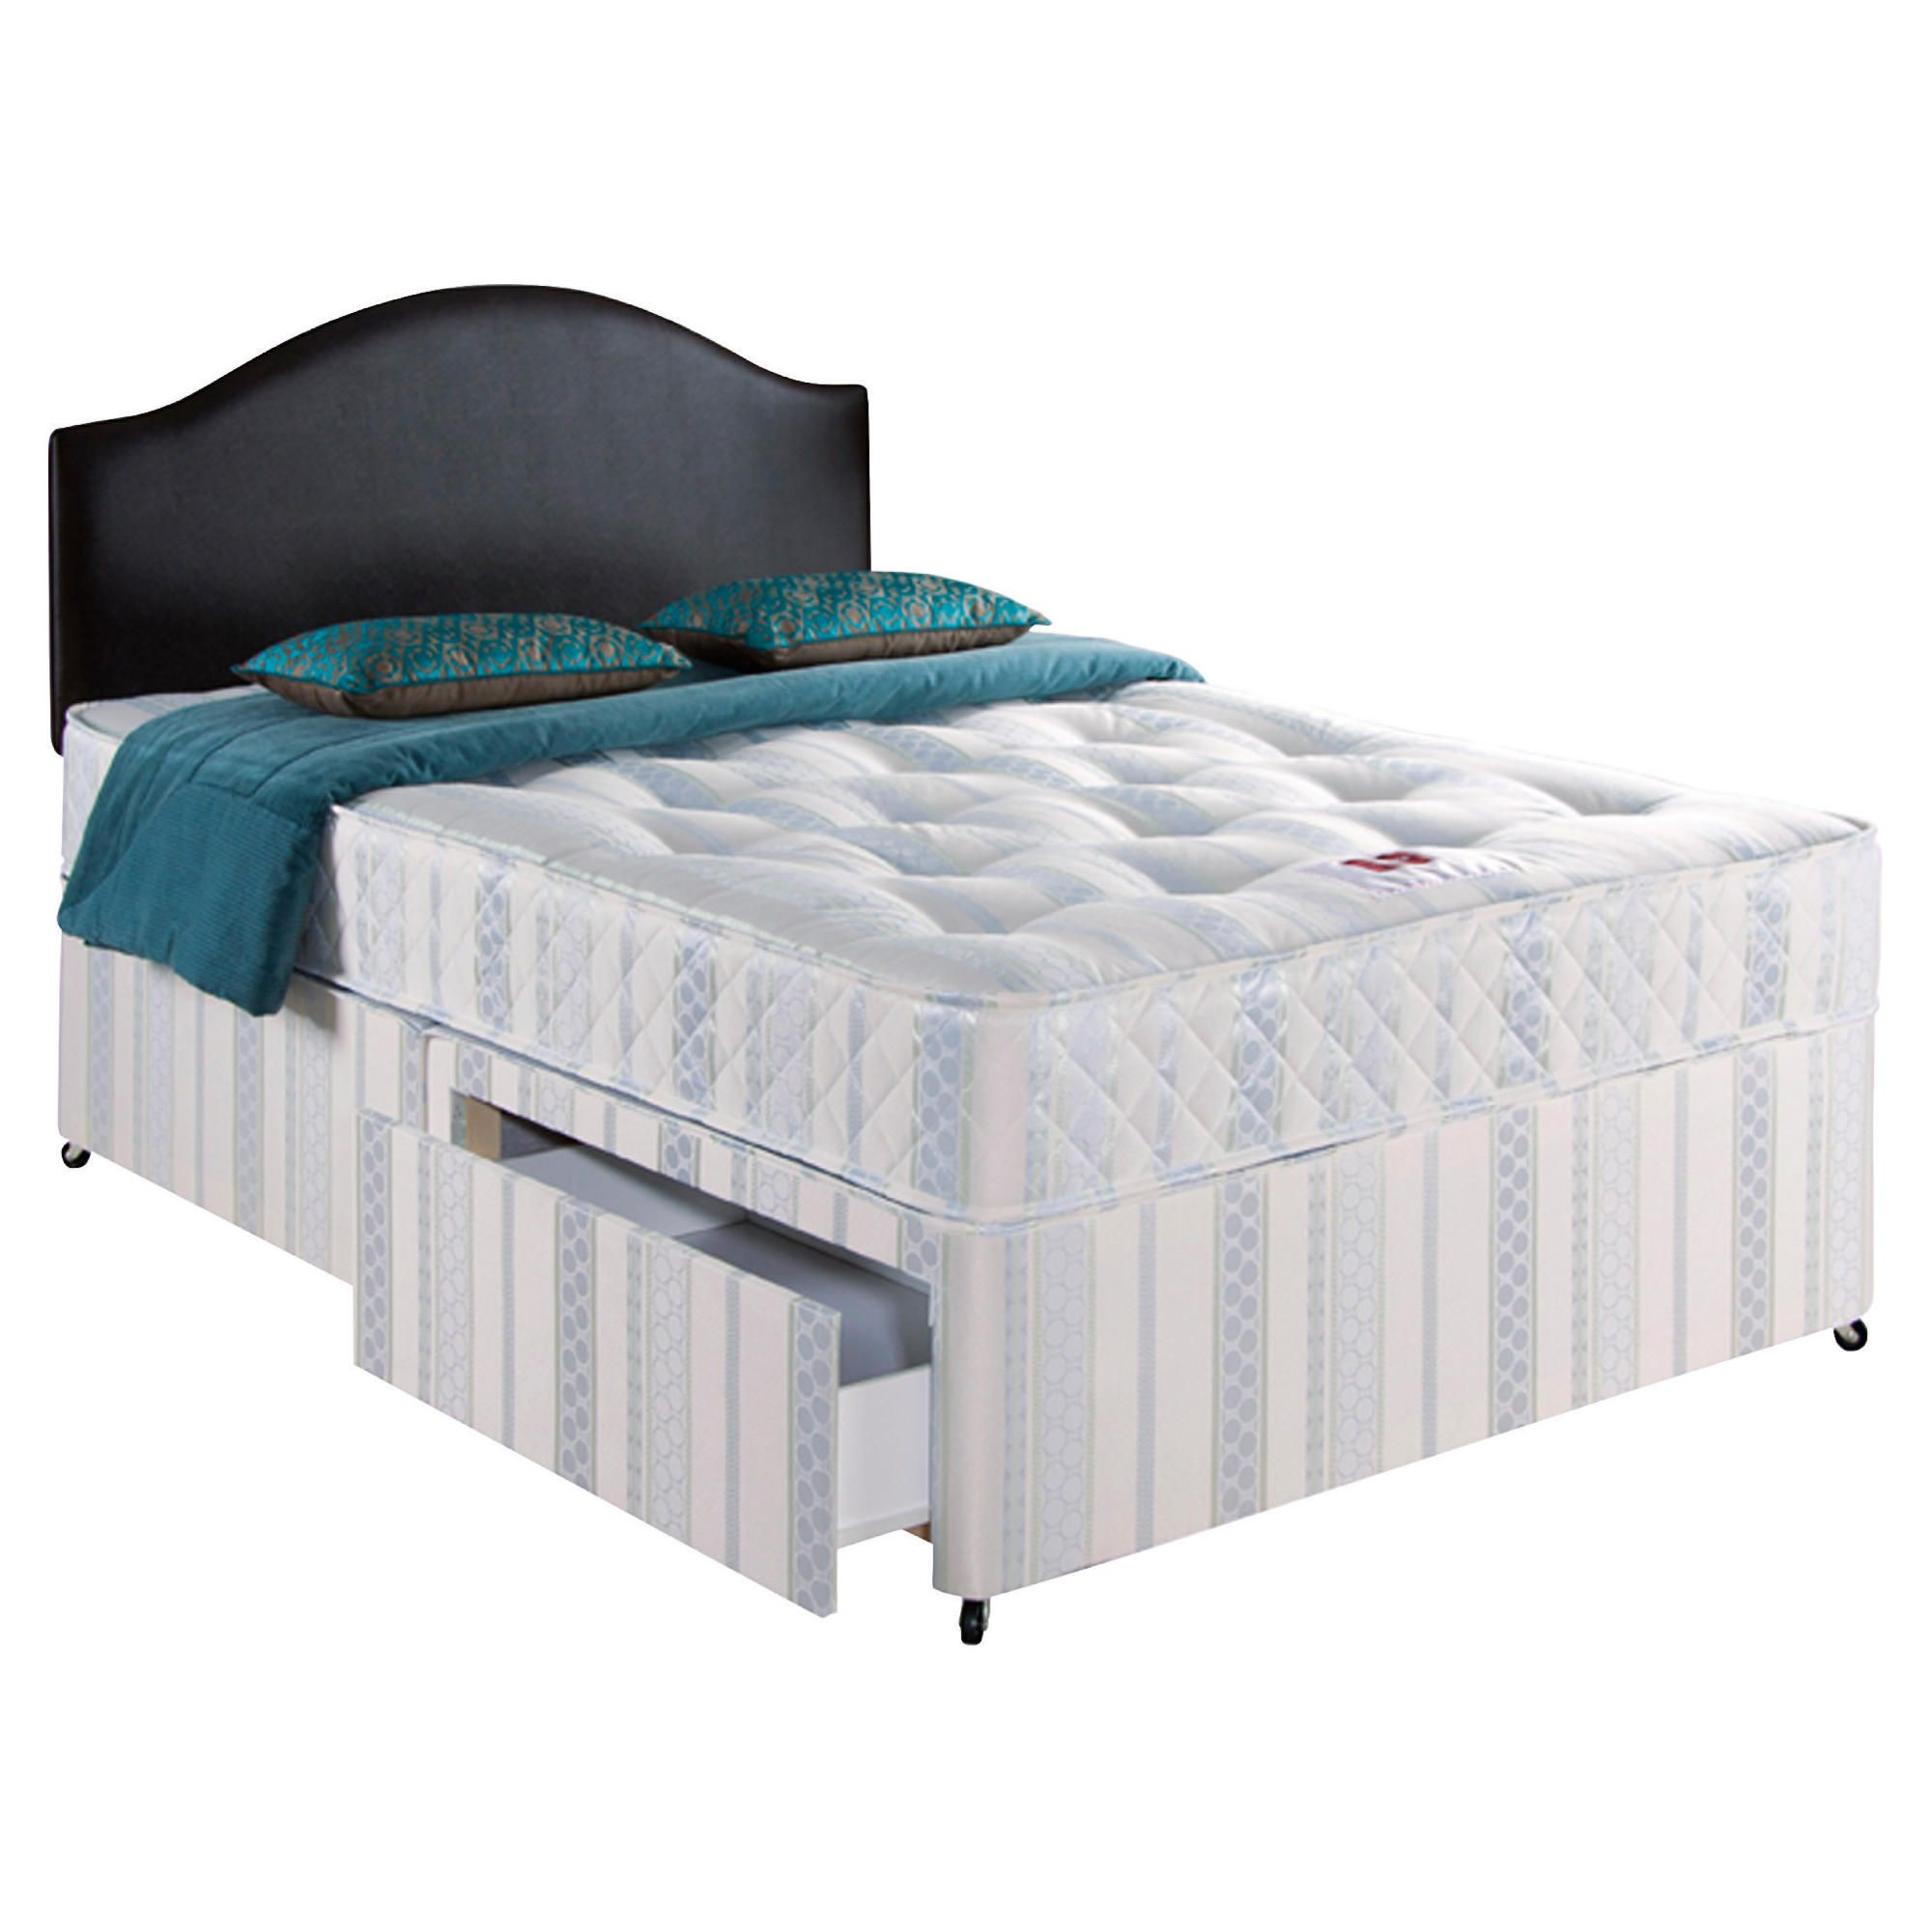 Home and garden furniture airsprung danbury luxury king for Divan bed offers